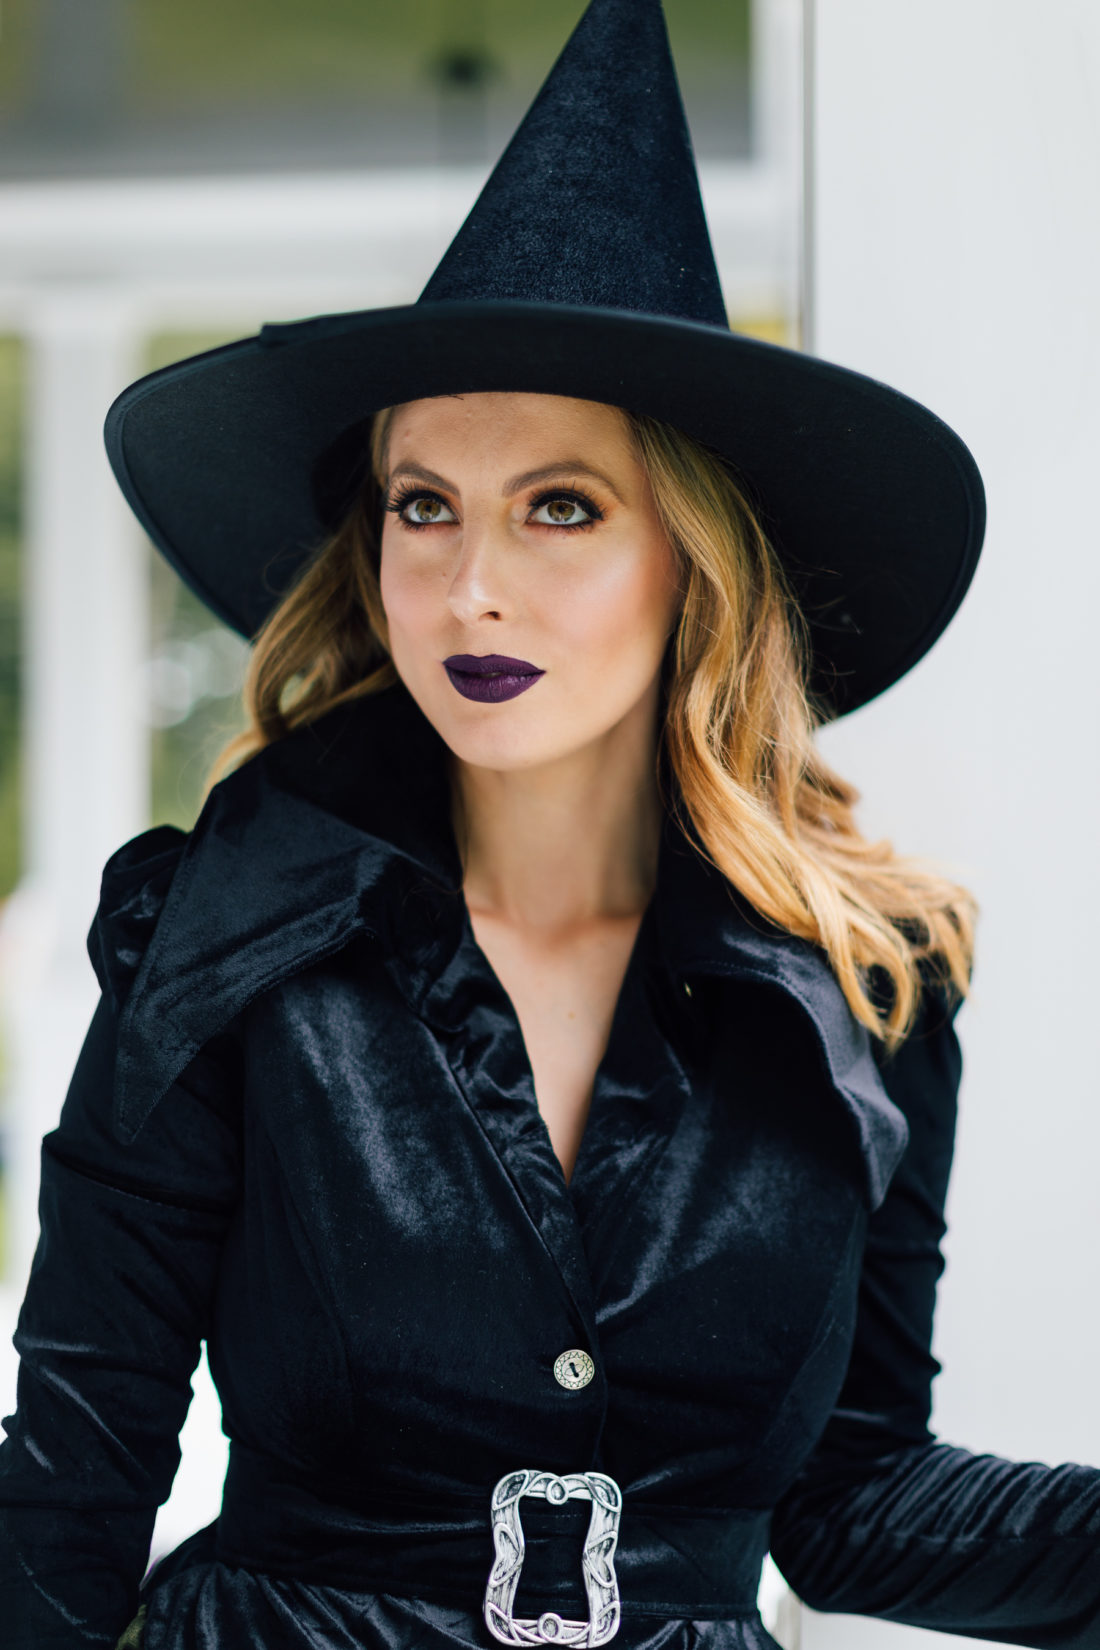 Eva Amurri Martino goes witch chic for Halloween